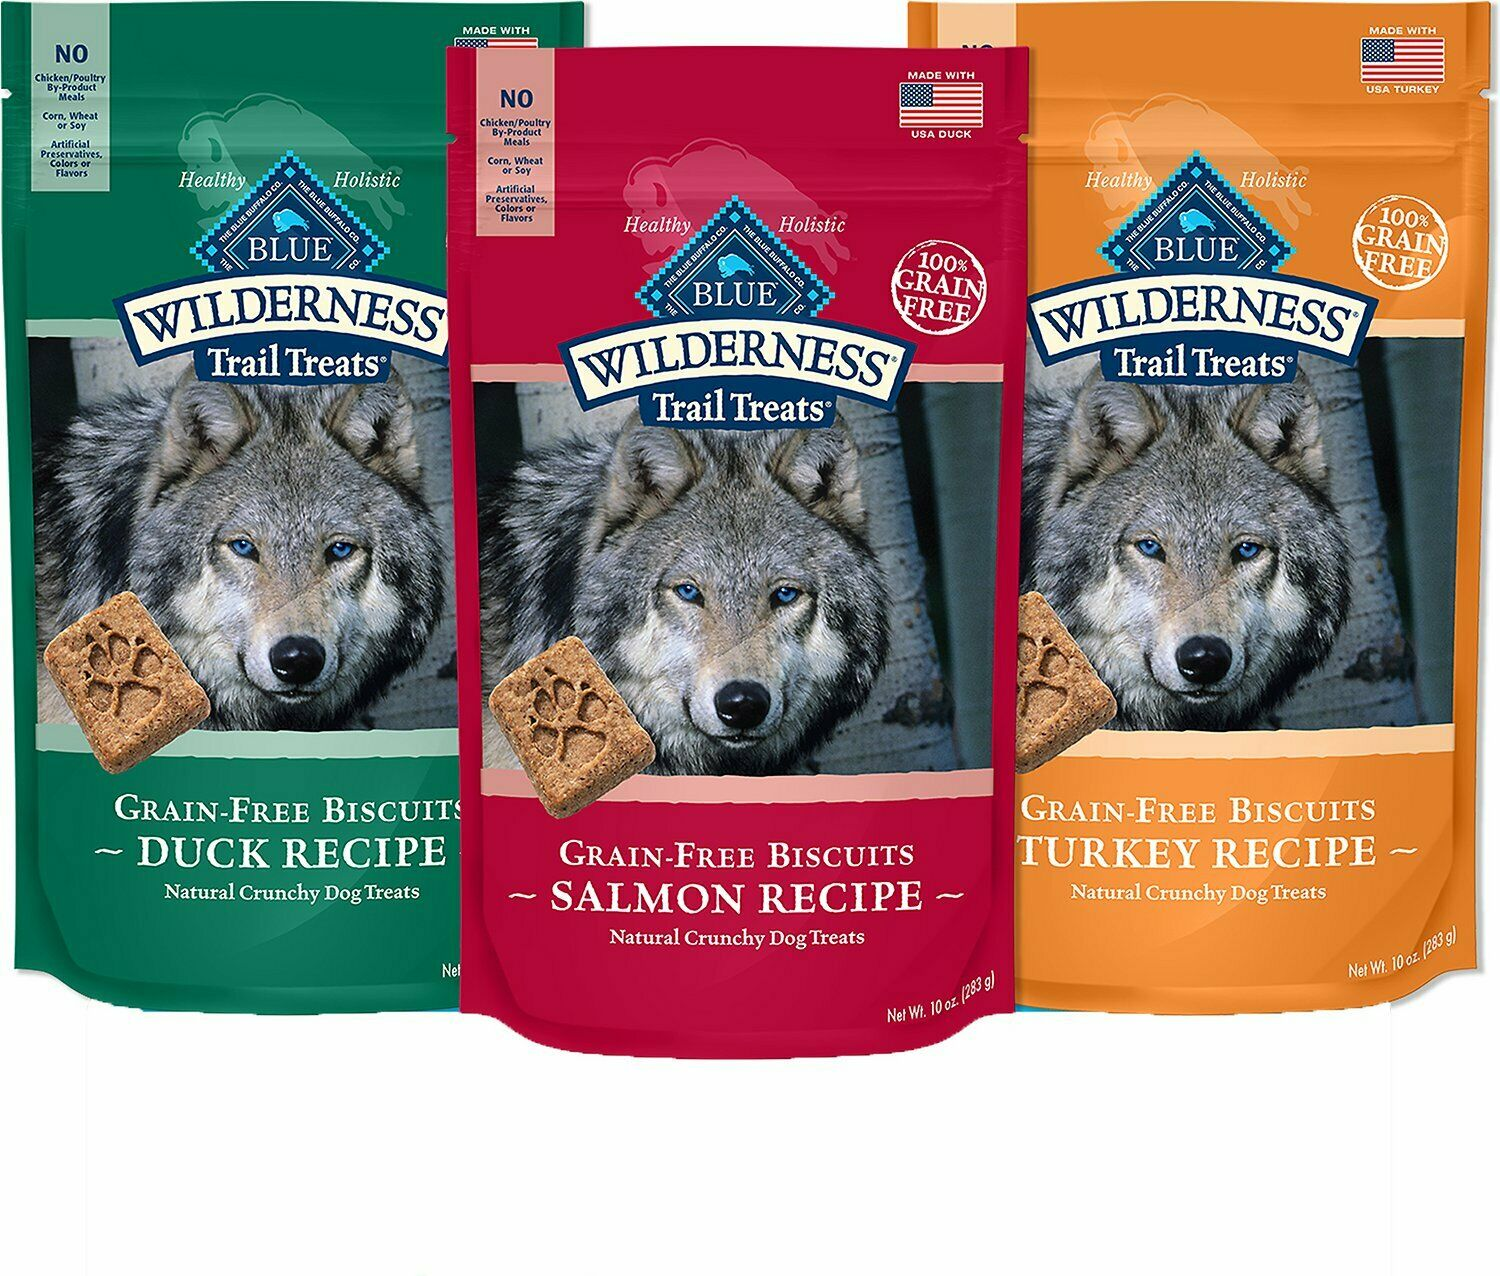 Blue Buffalo Wilderness Trail Biscuits Grain-free Dog Treats Free Shipping